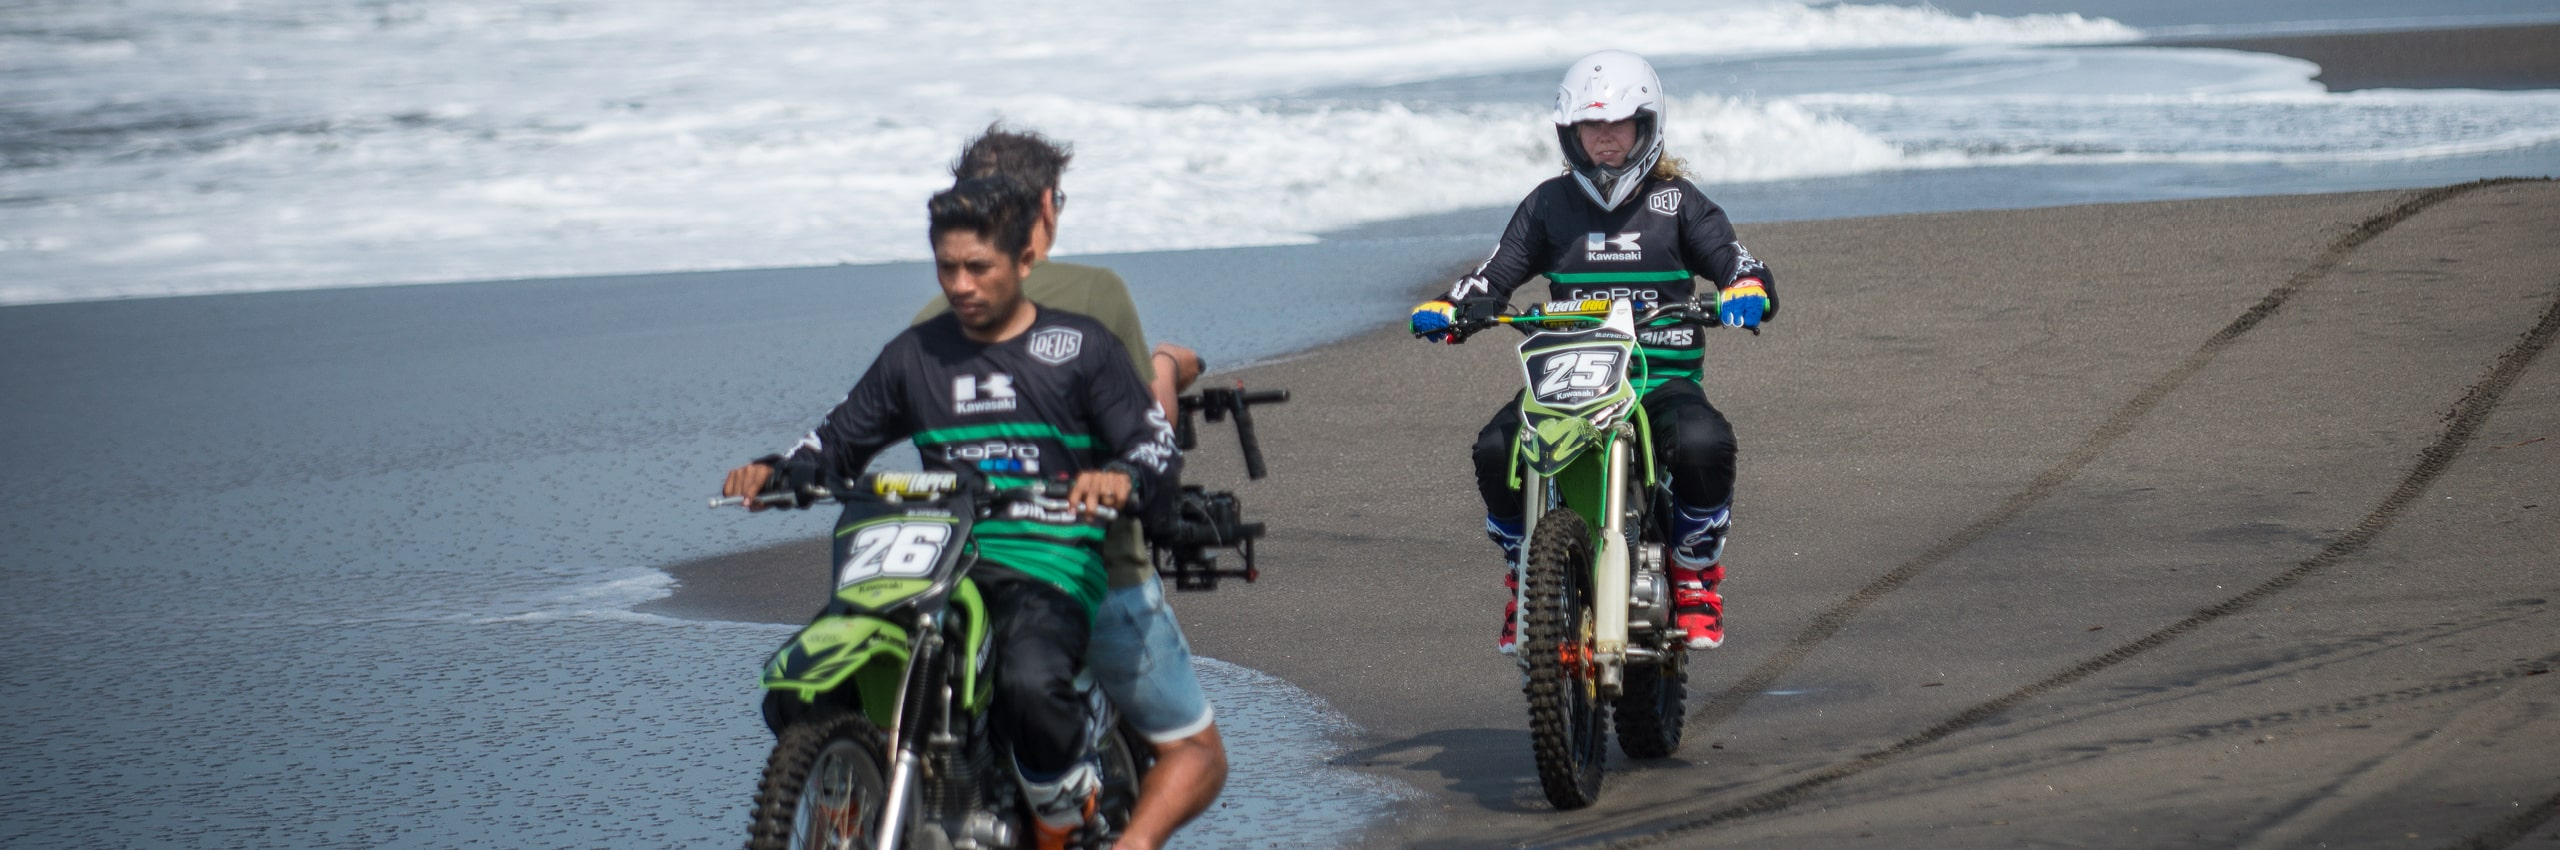 Bali_Dirt_Bikes_Learn_to_ride_Slider6